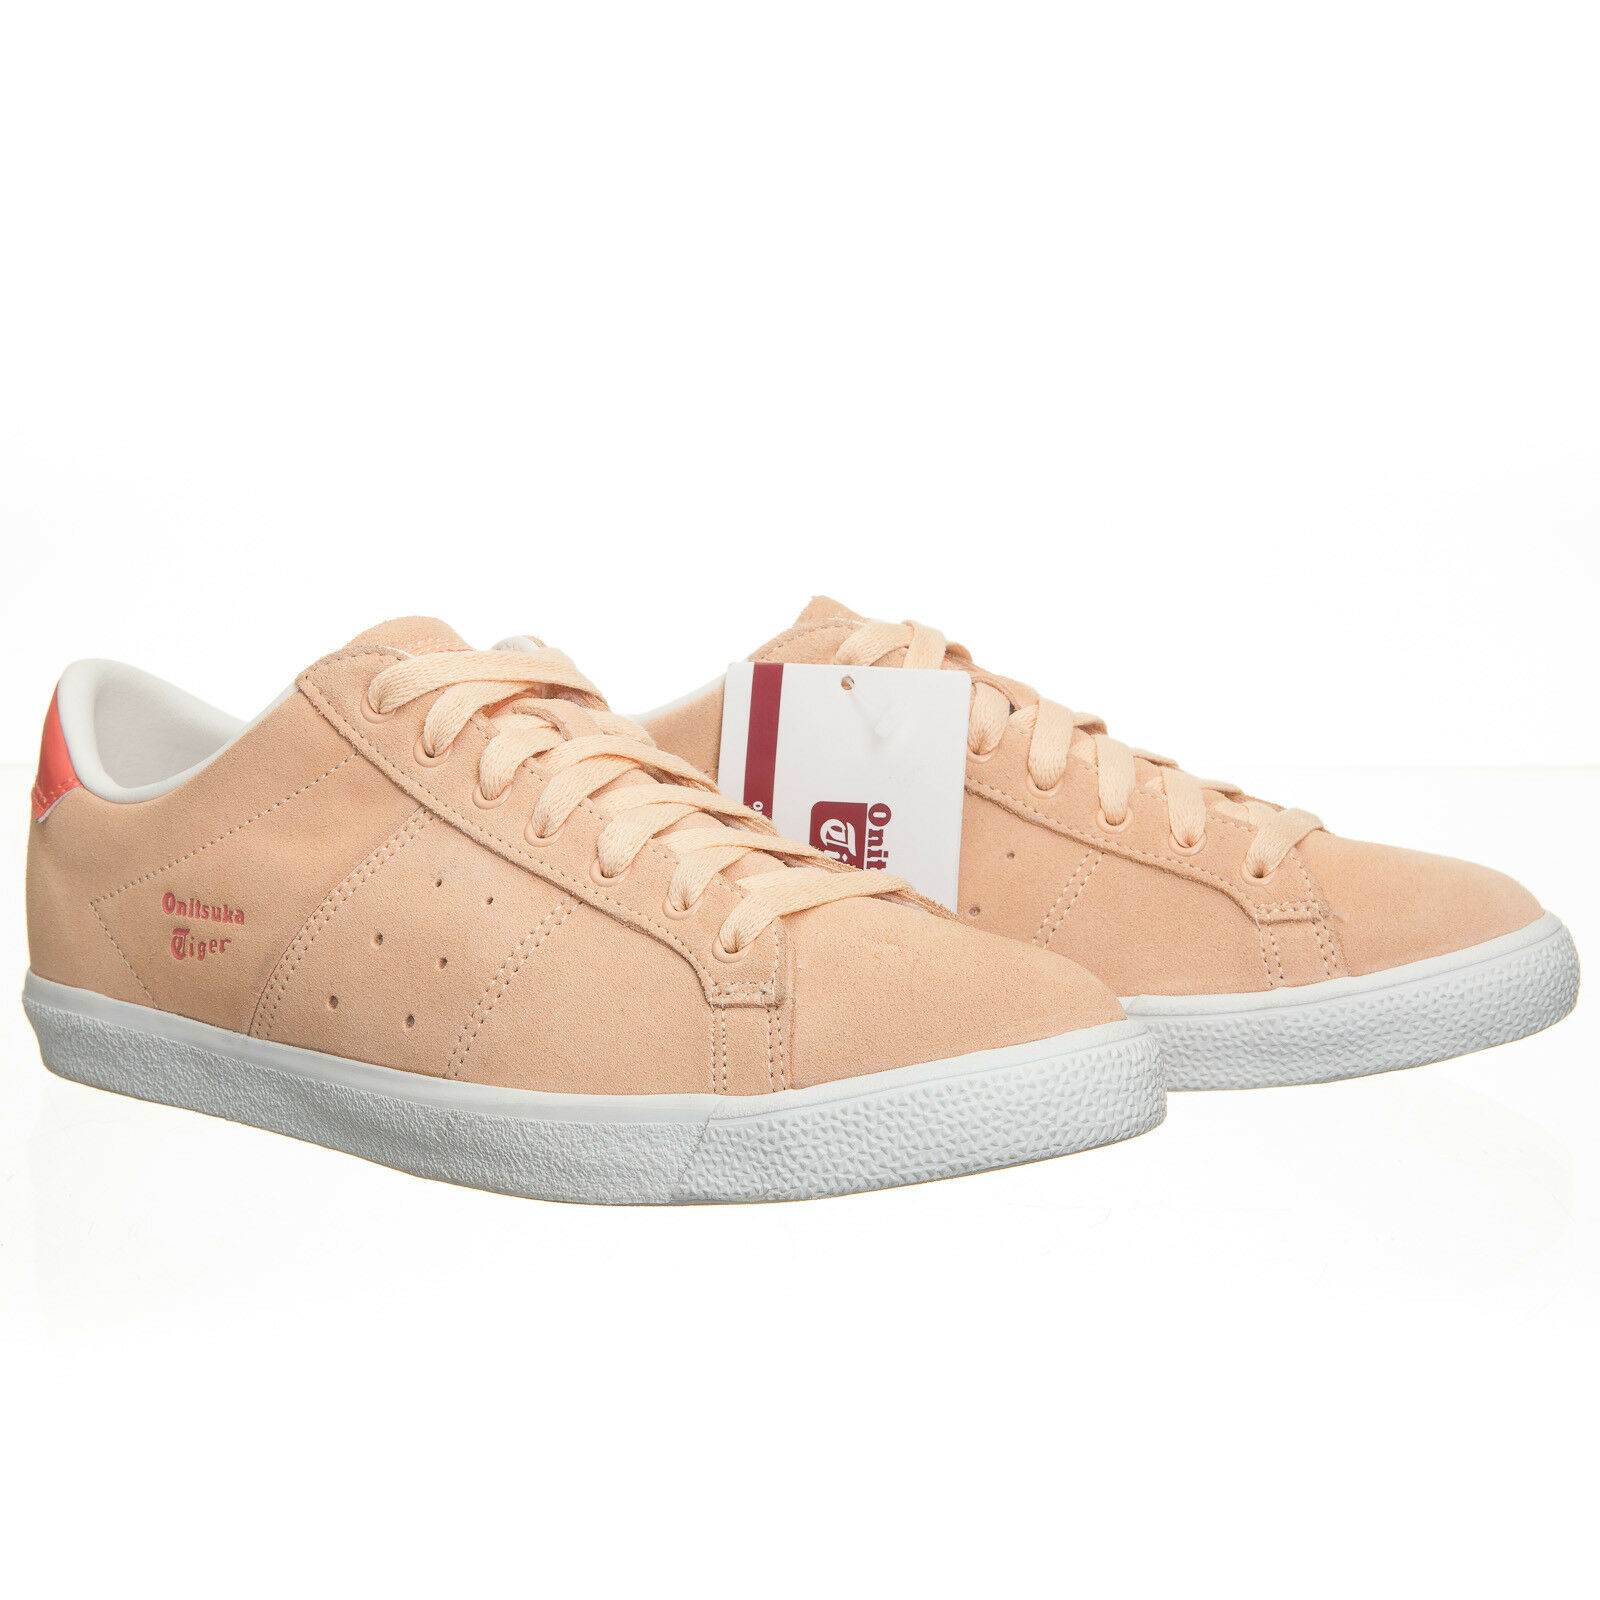 Onitsuka Tiger Lawnship Suede Apricot Peach Pink - Women's 8